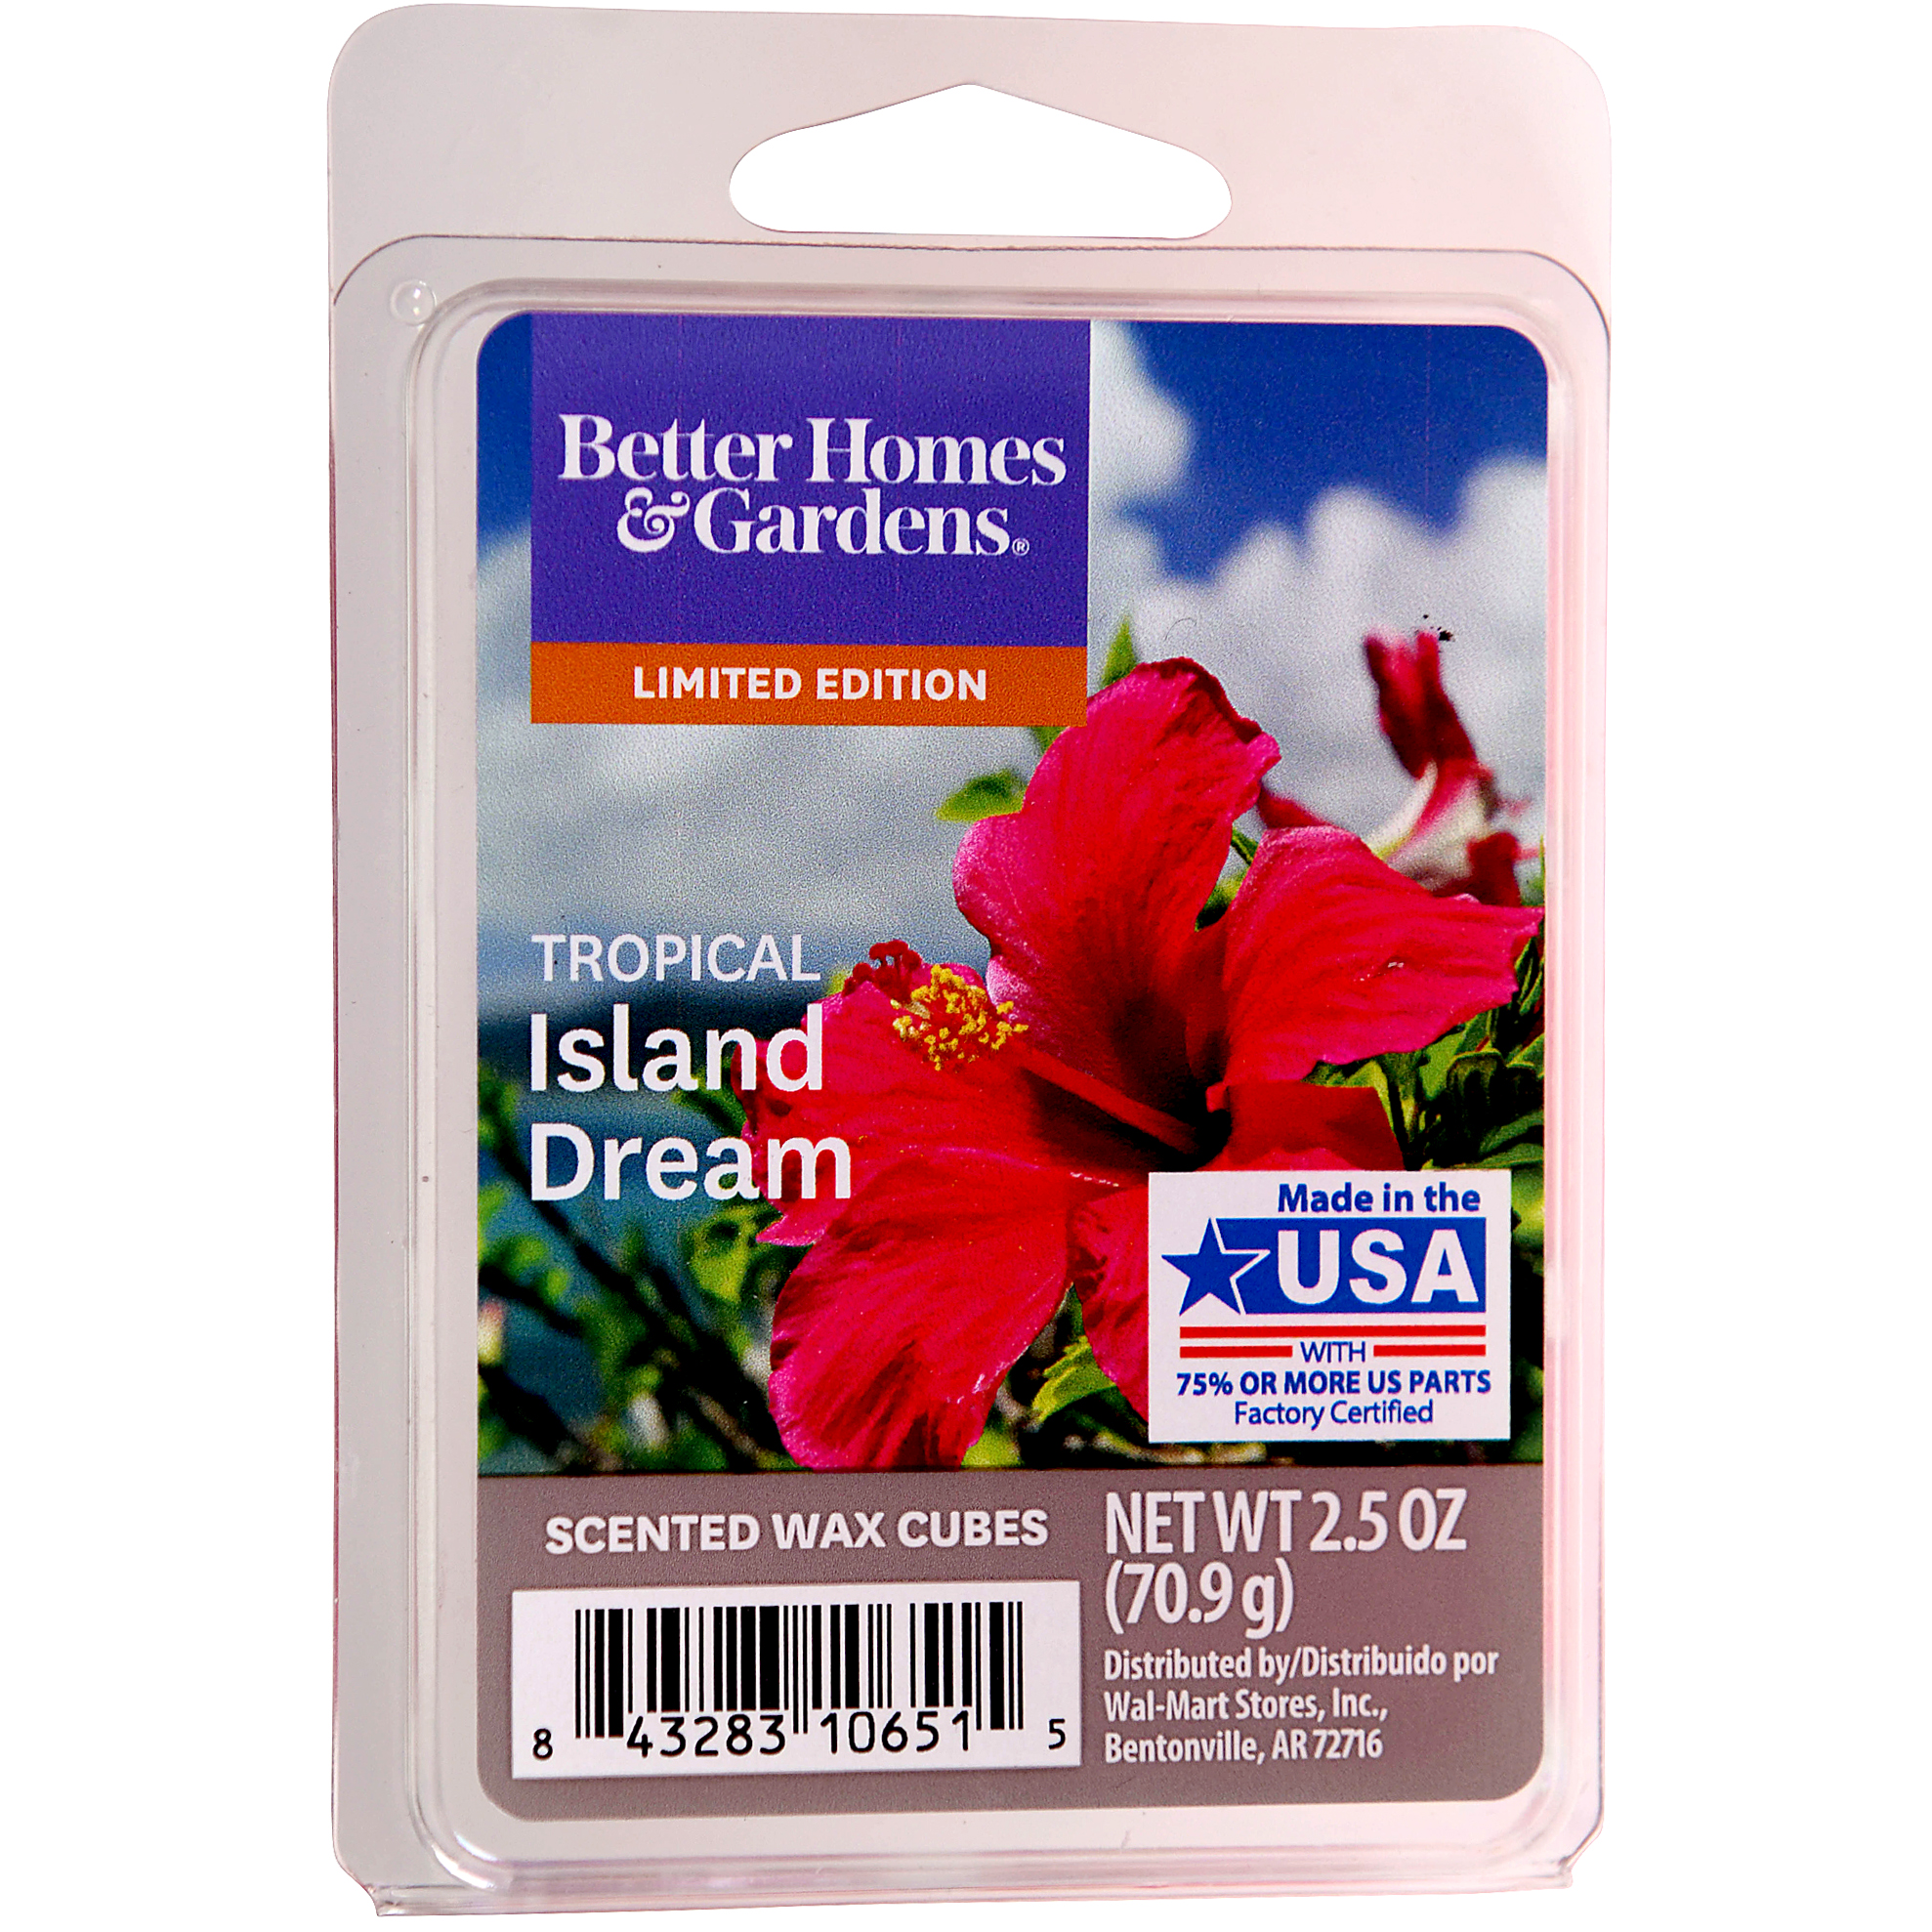 Better Homes and Gardens Scented Wax Cubes, Tropical Island Dream